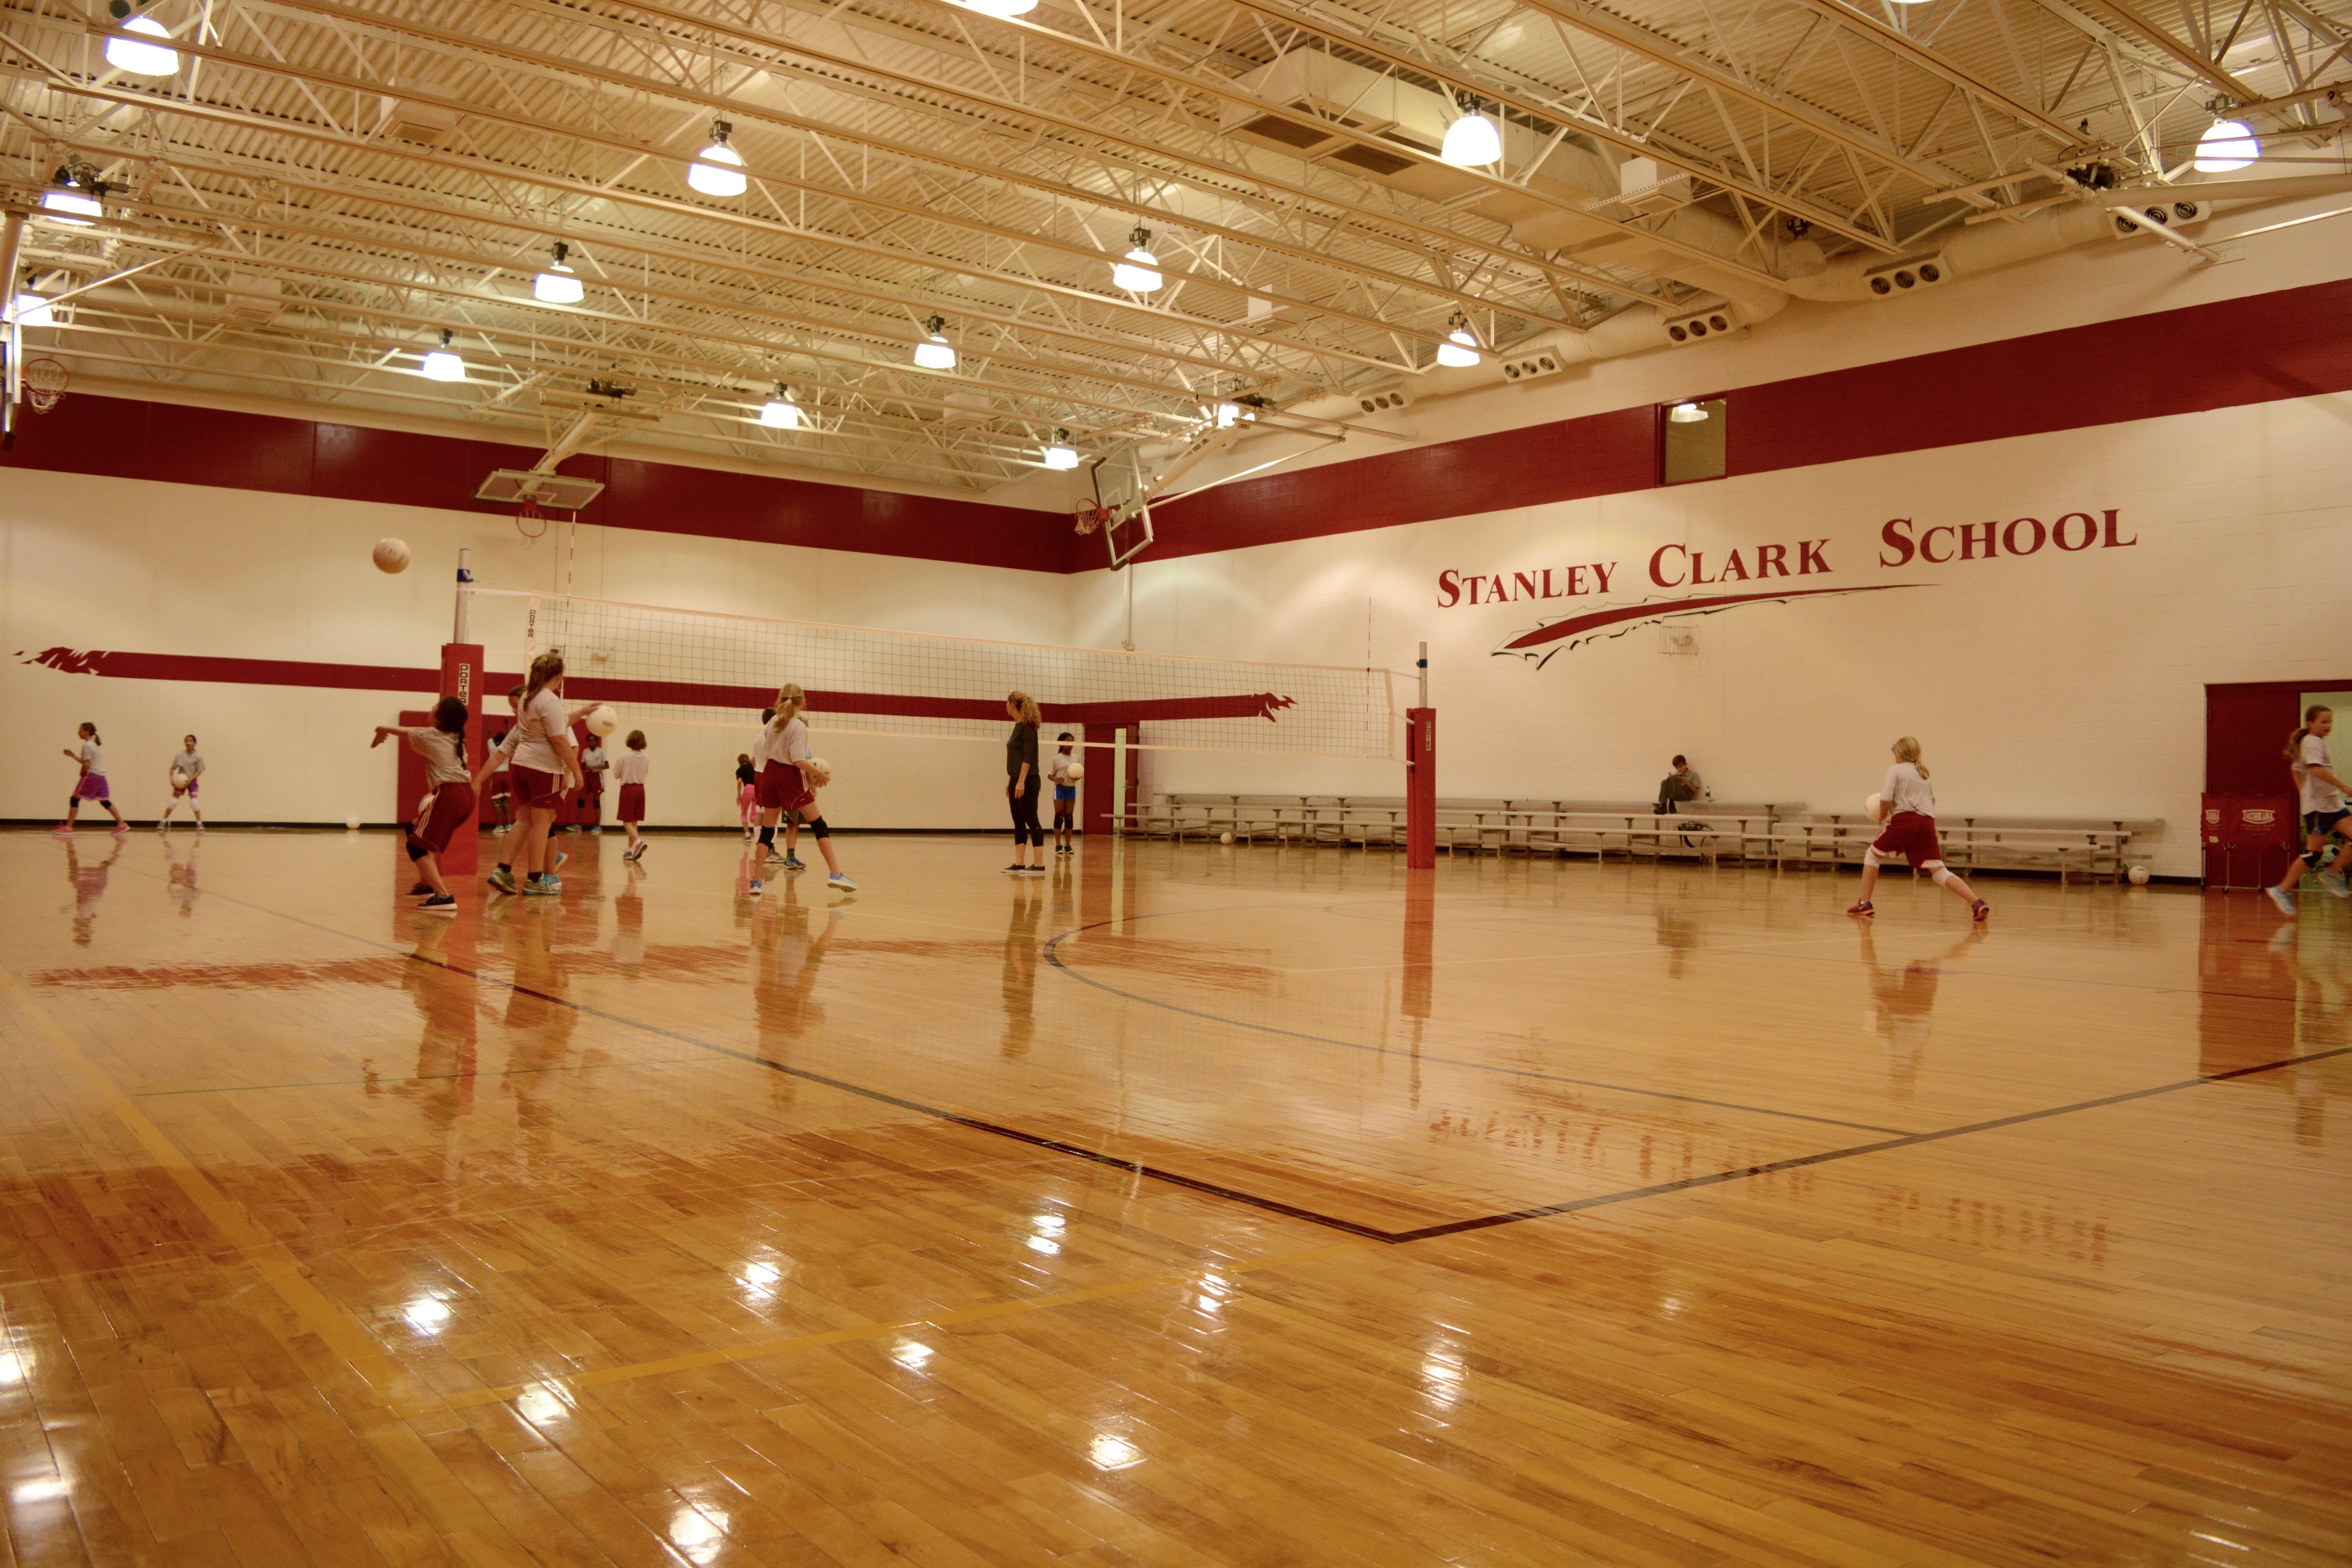 Large Gym with students playing volleyball